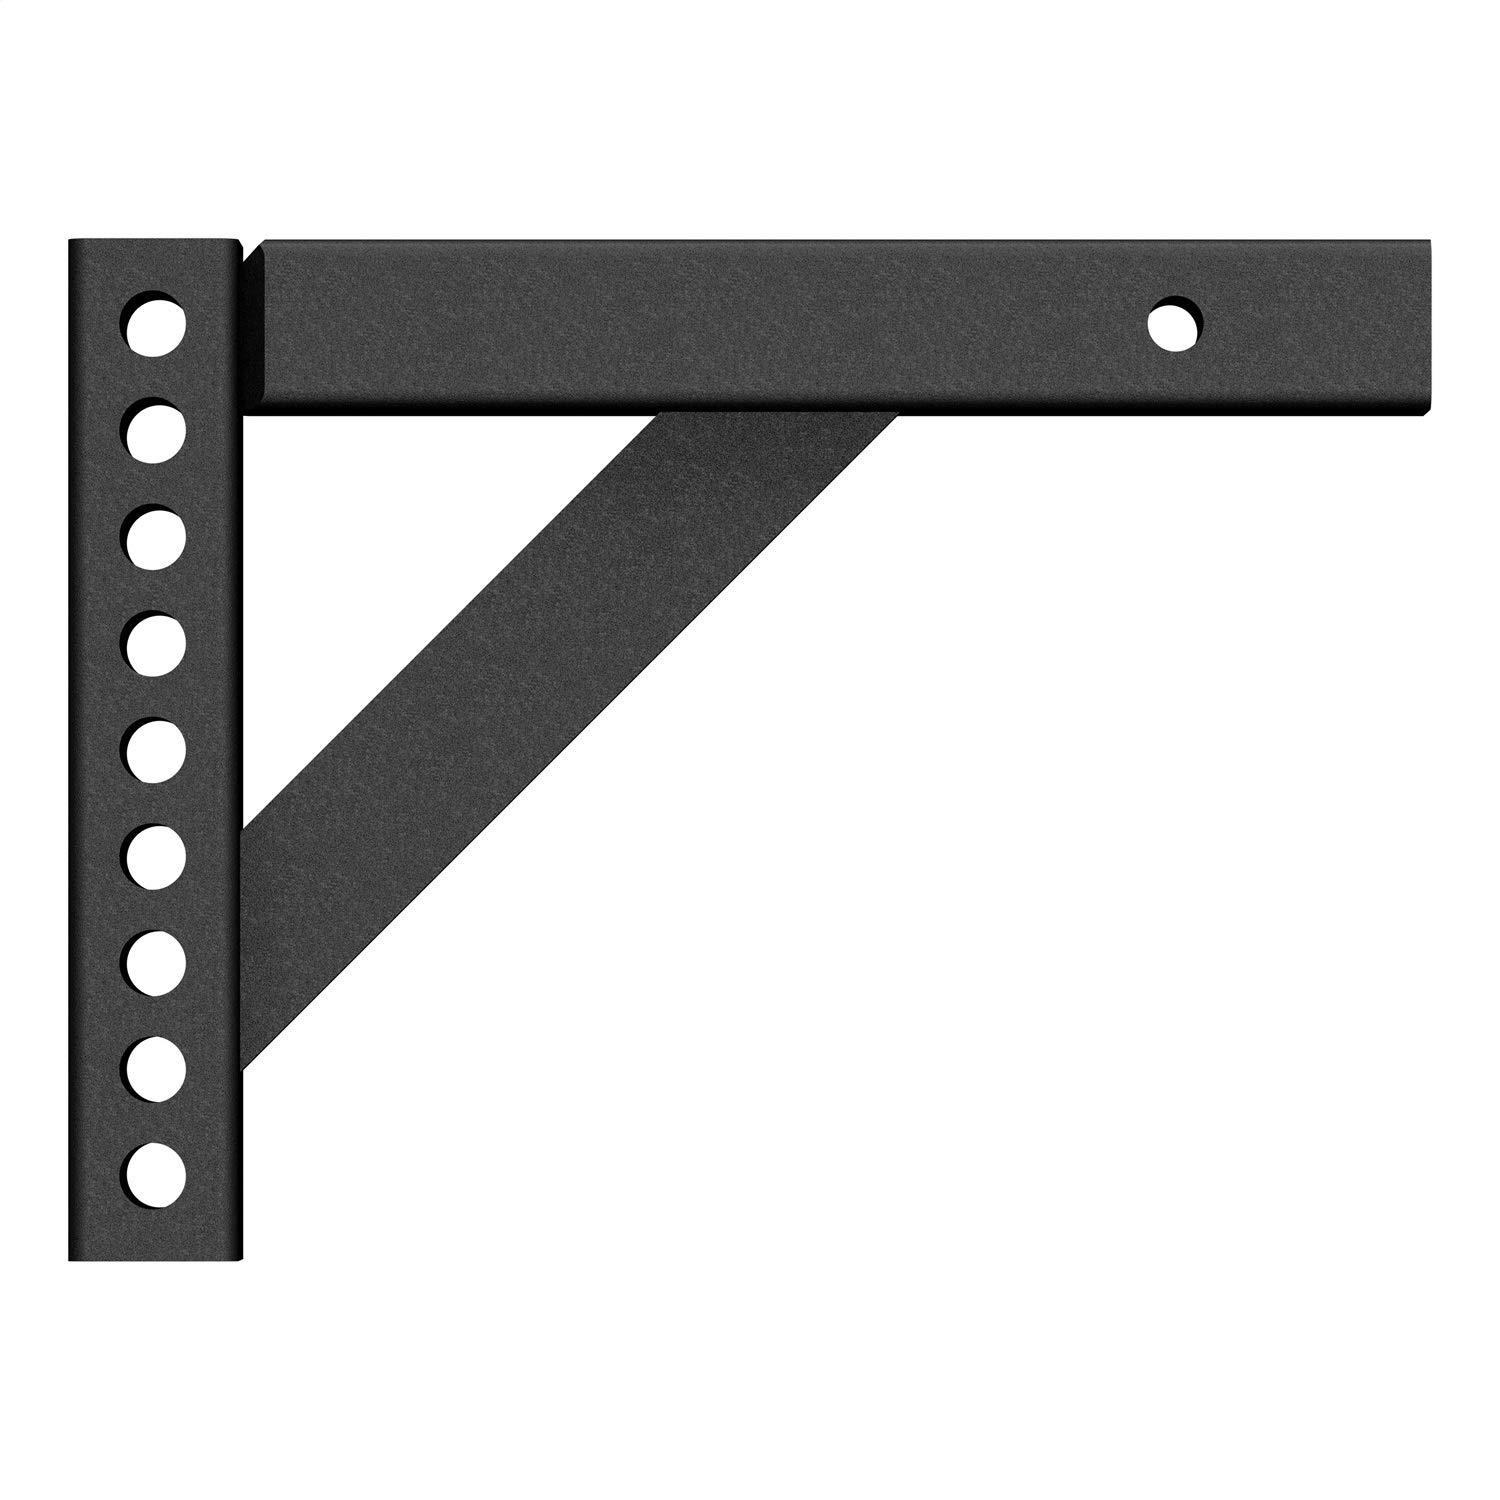 CURT 17121 Adj Hitch Bar 14 In X 6 In With 10 1/4 In Rise Curt Manufacturing